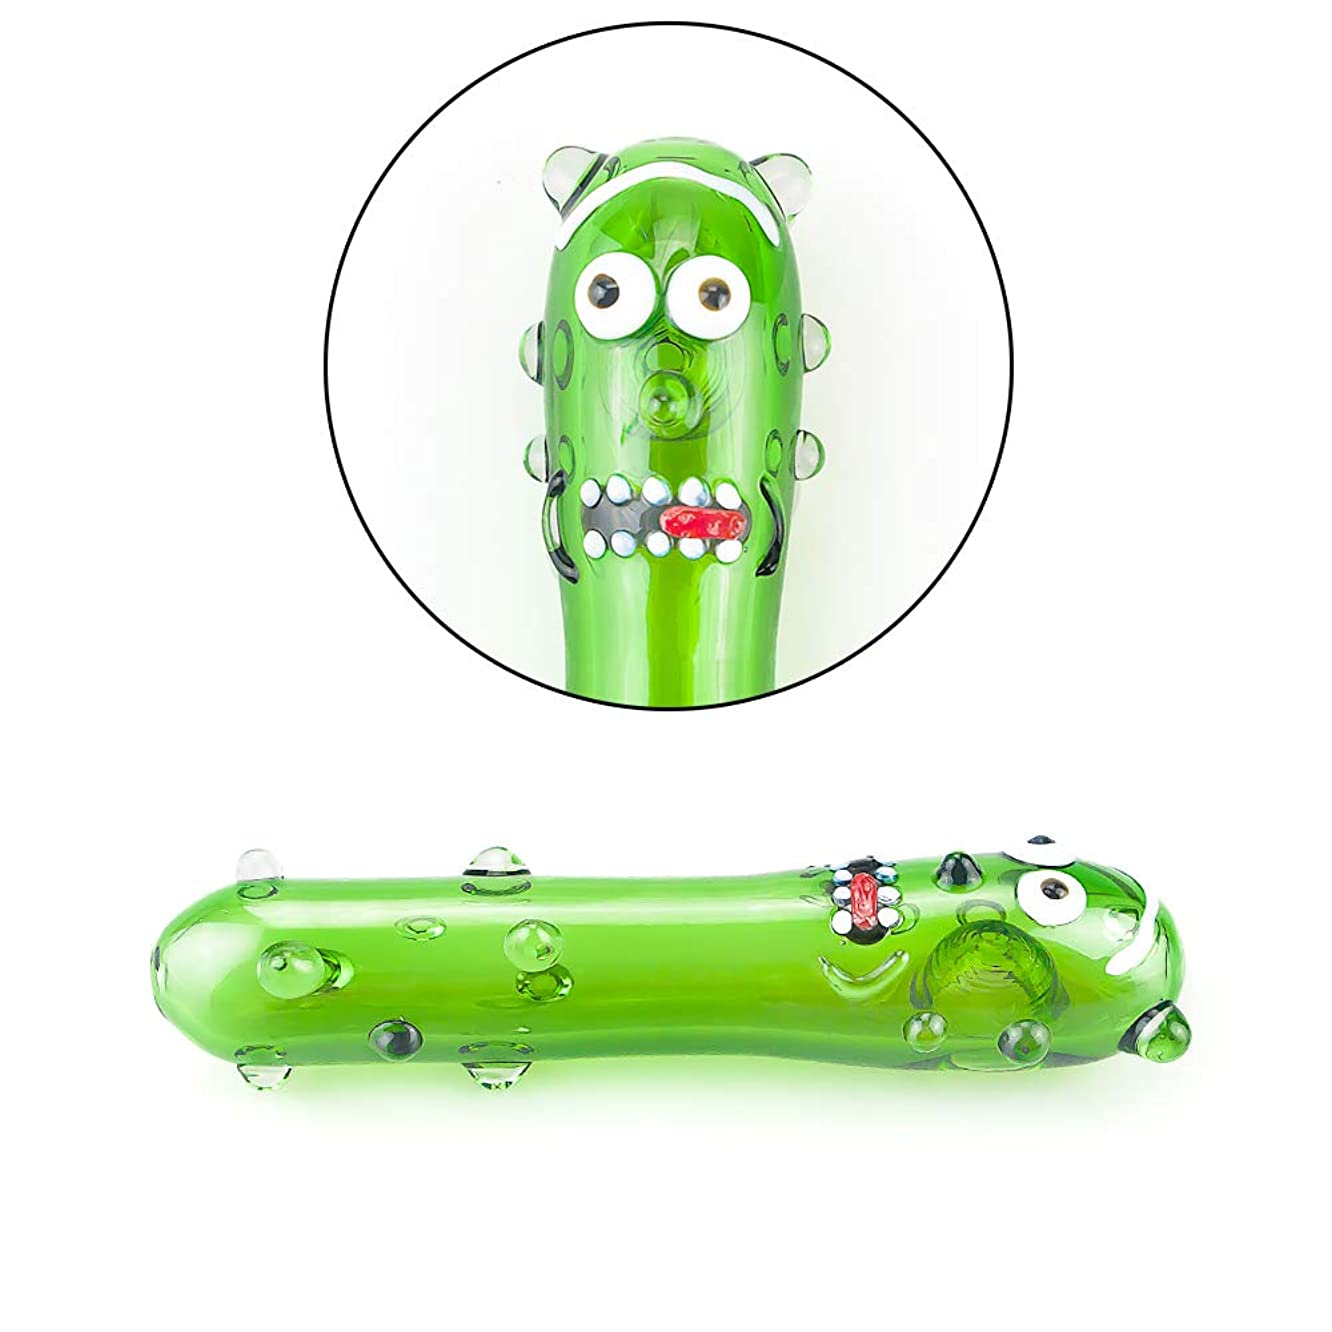 WRT Handmade 4.3 Inch Green Cucumber Long Pipe, Portable Art Collection Unbreakable Tube